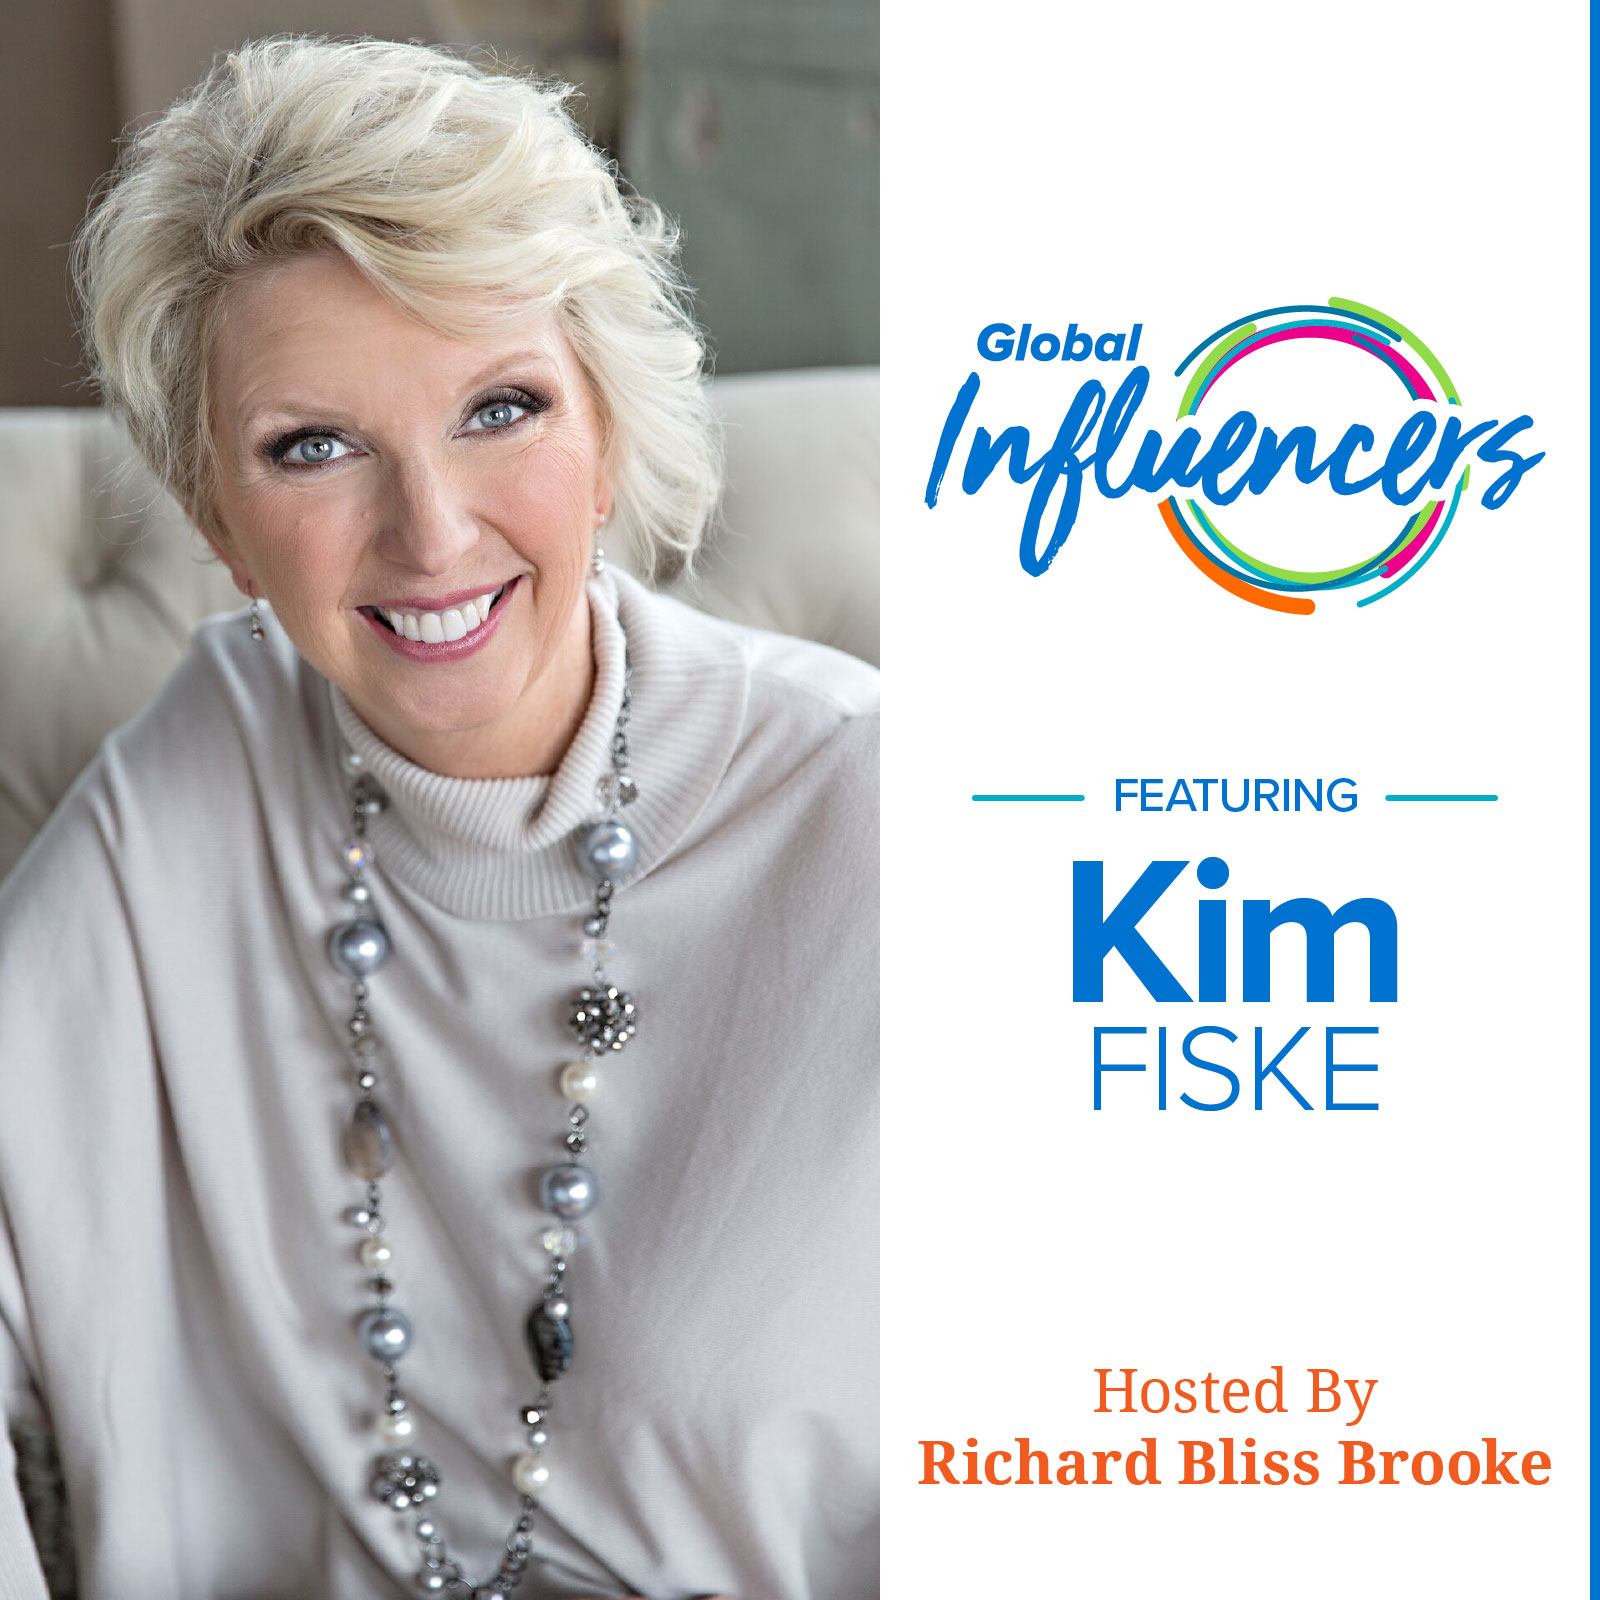 Kim Fiske - Global Influencer